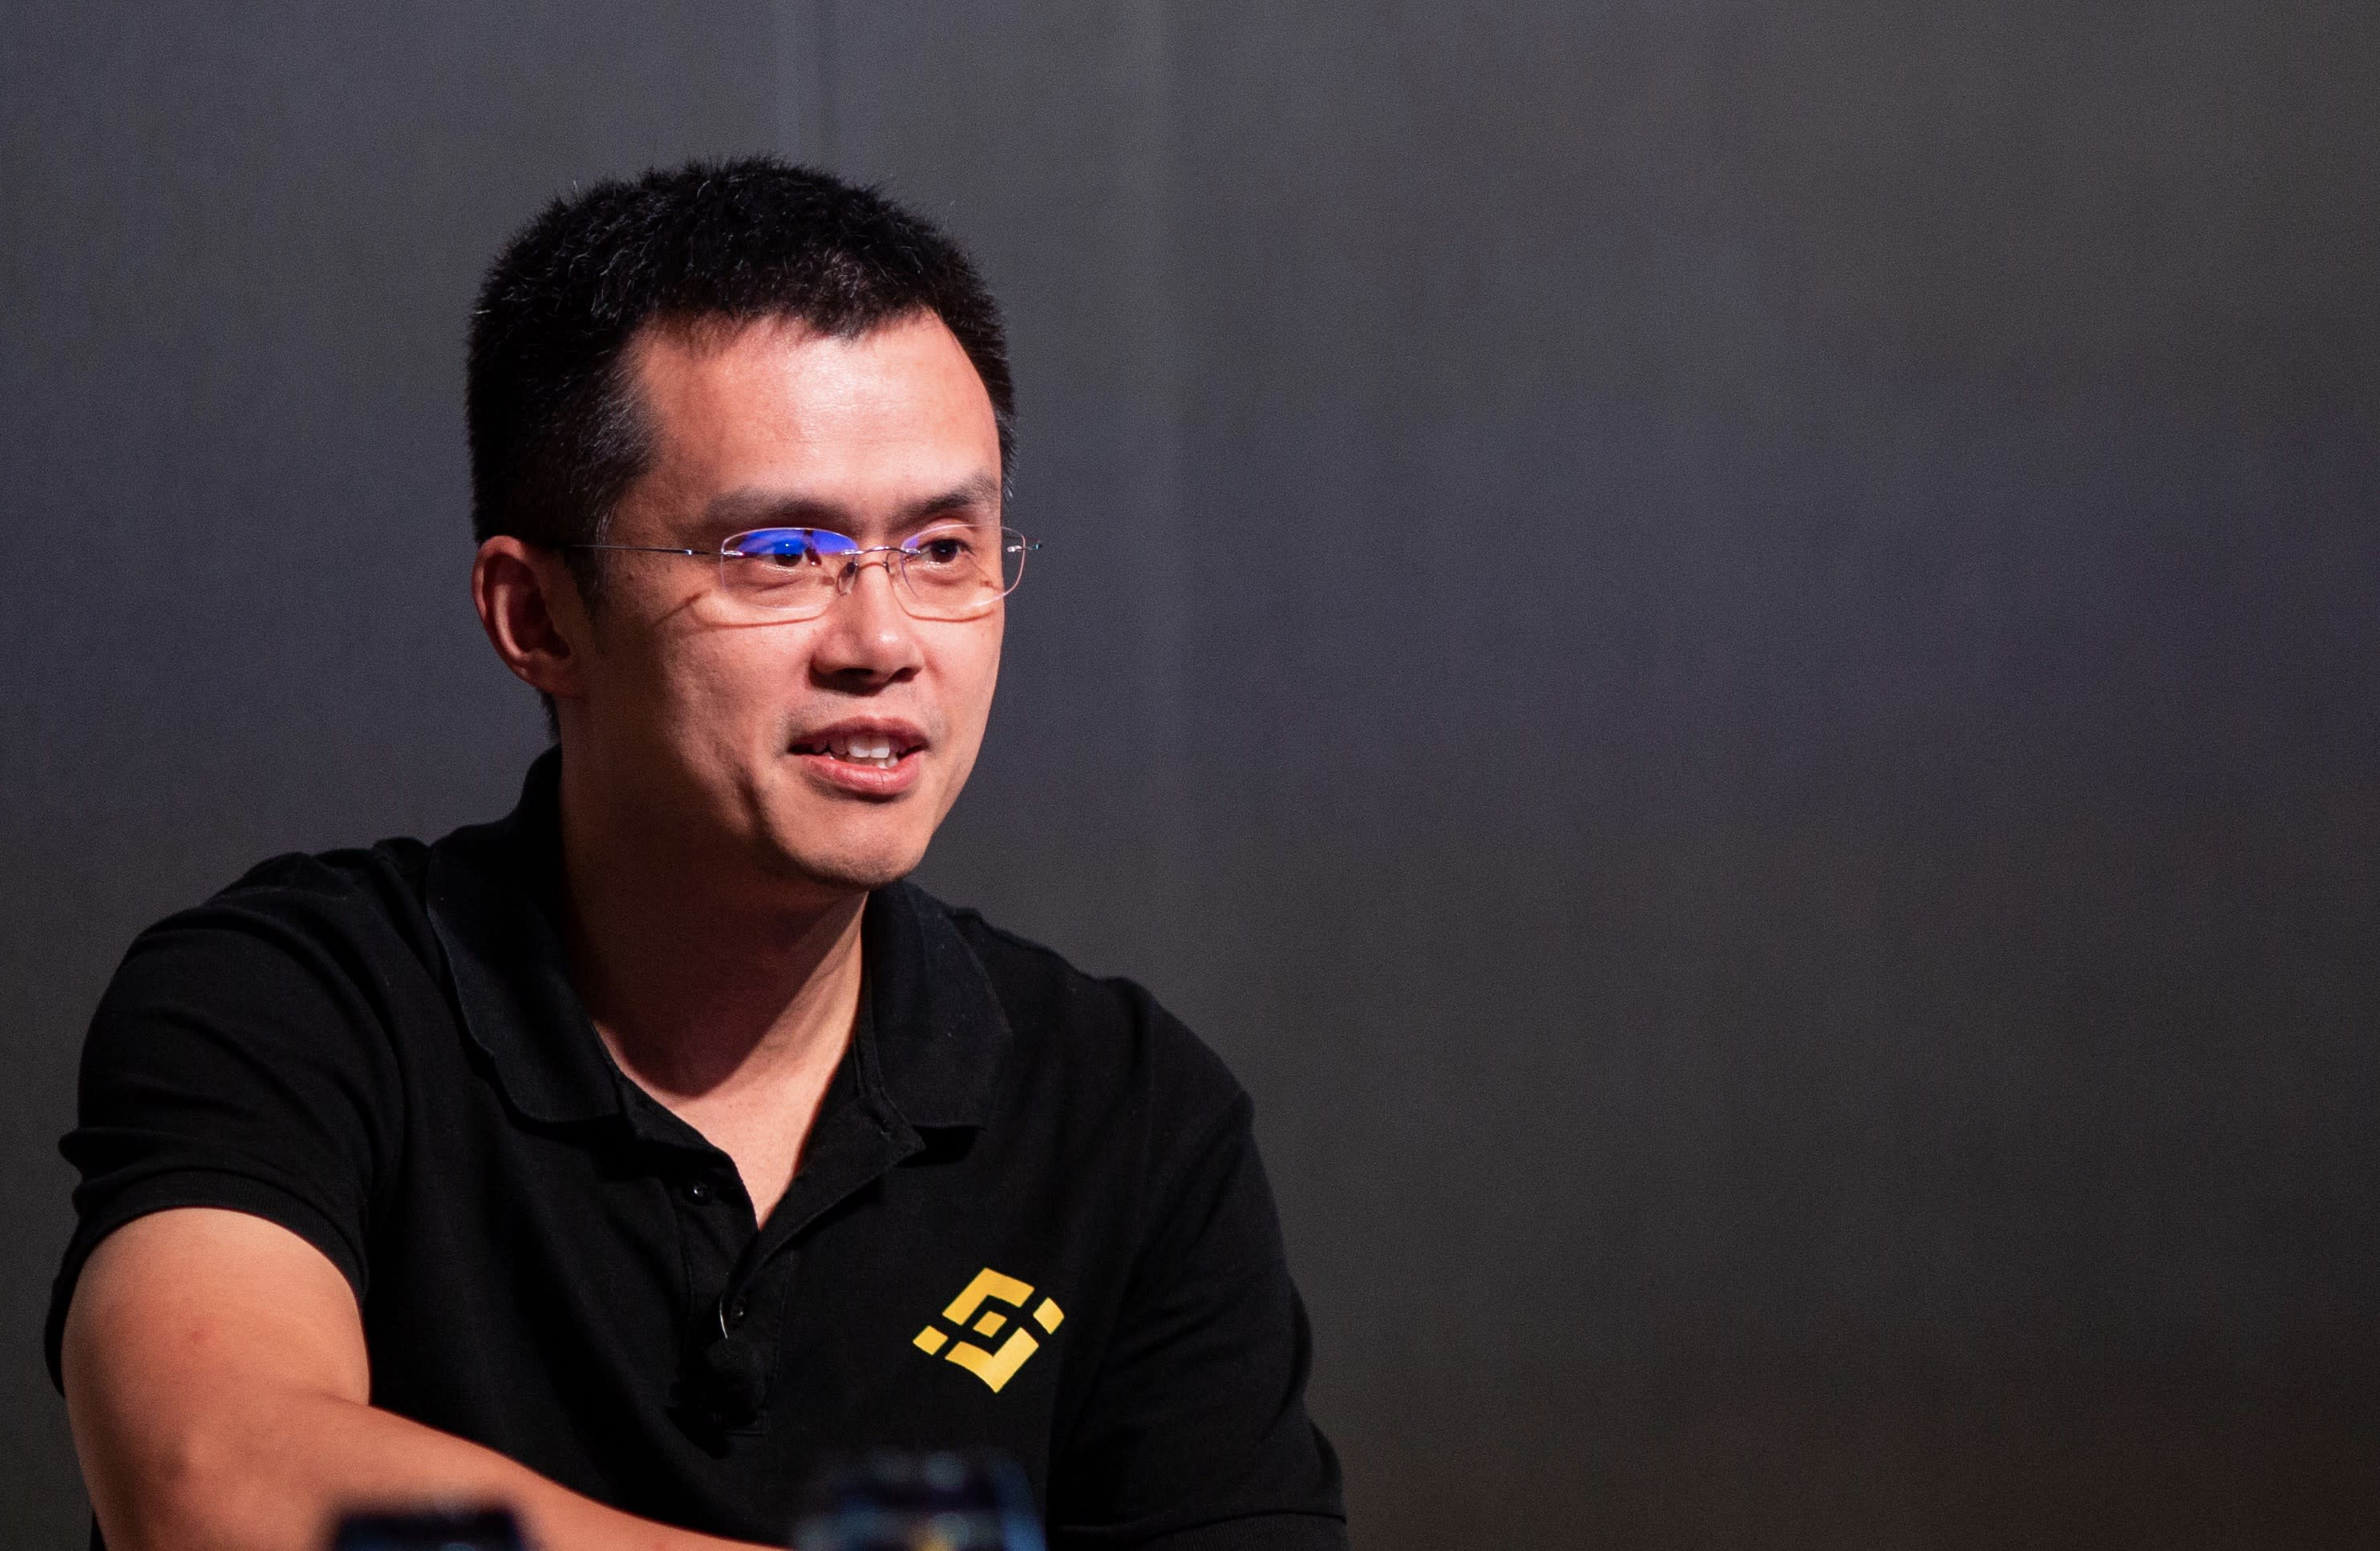 Security Researcher Tears Up a Binance Scam Site to Find the Hackers